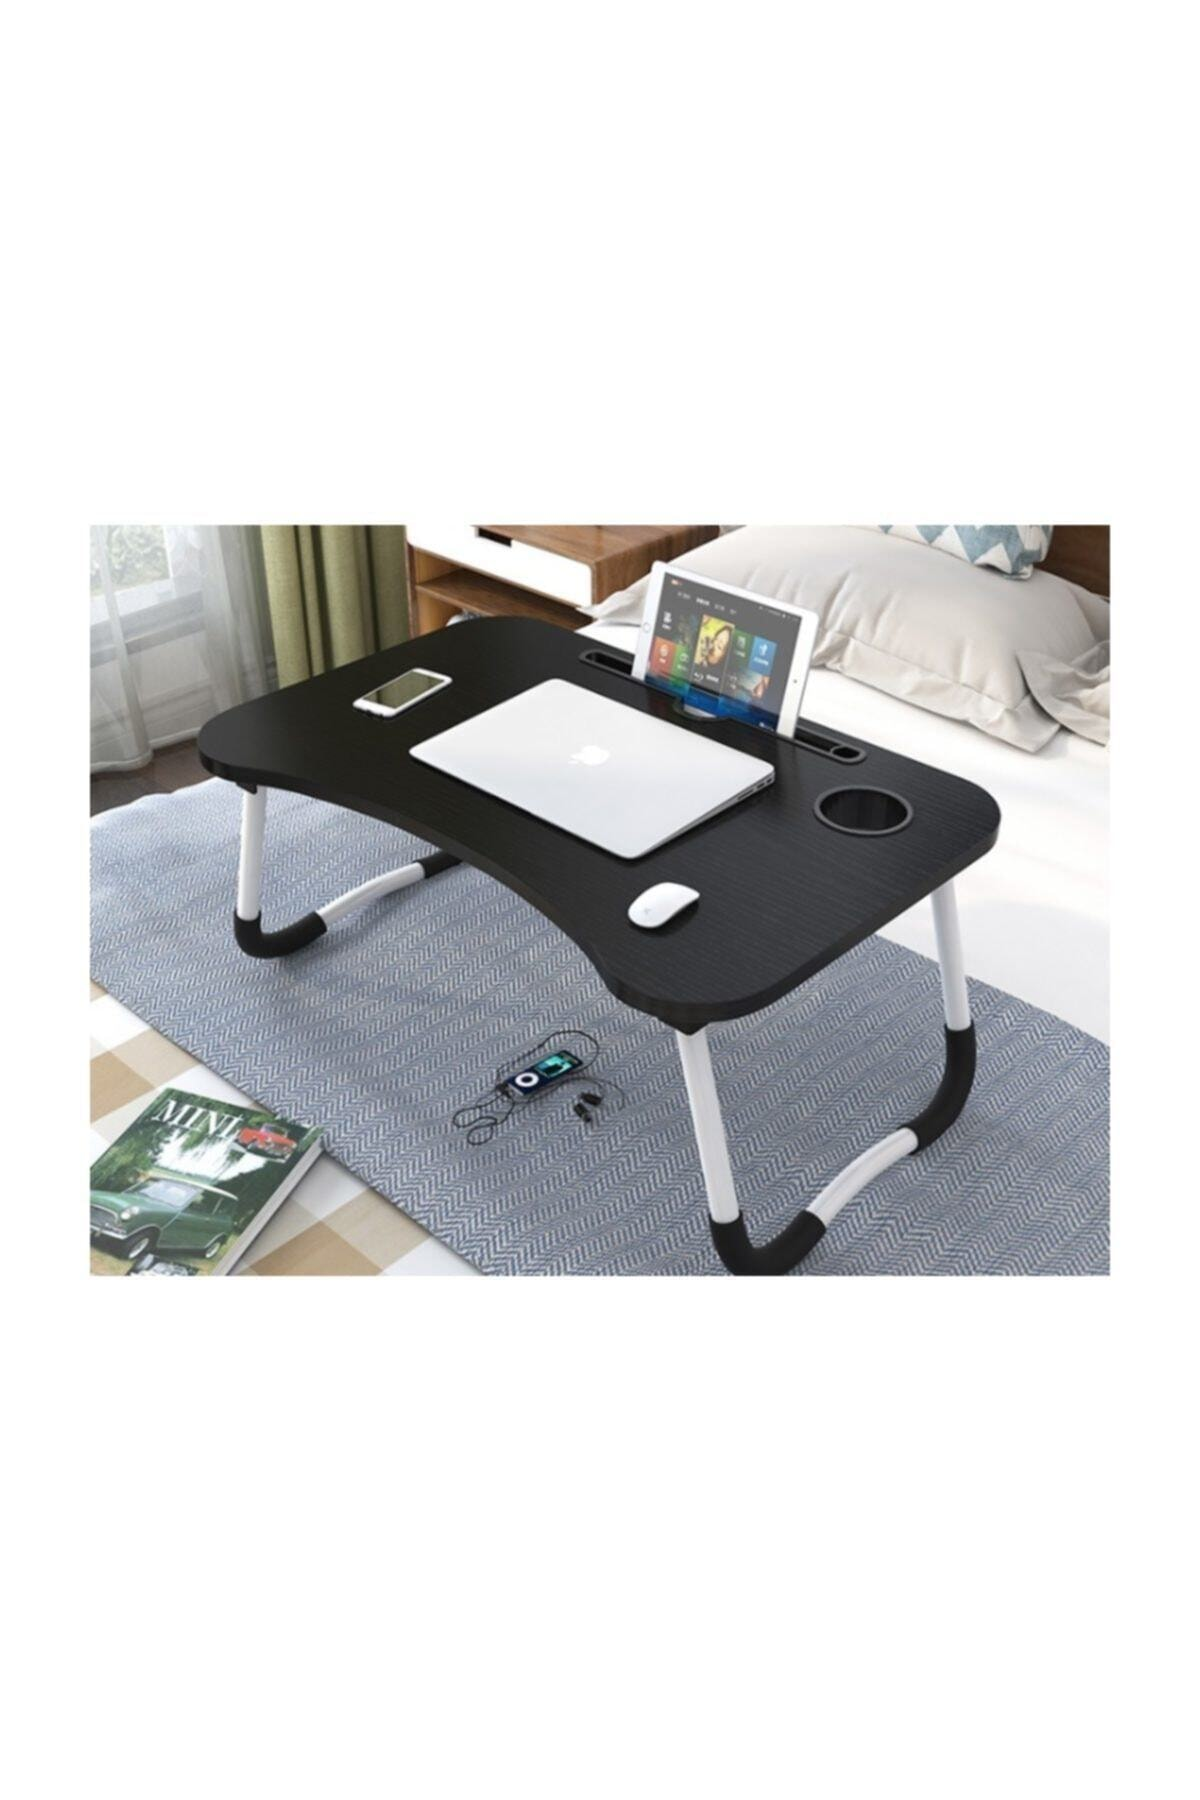 Portable Bed Desk for Laptop Tray Table for Eating and Writing